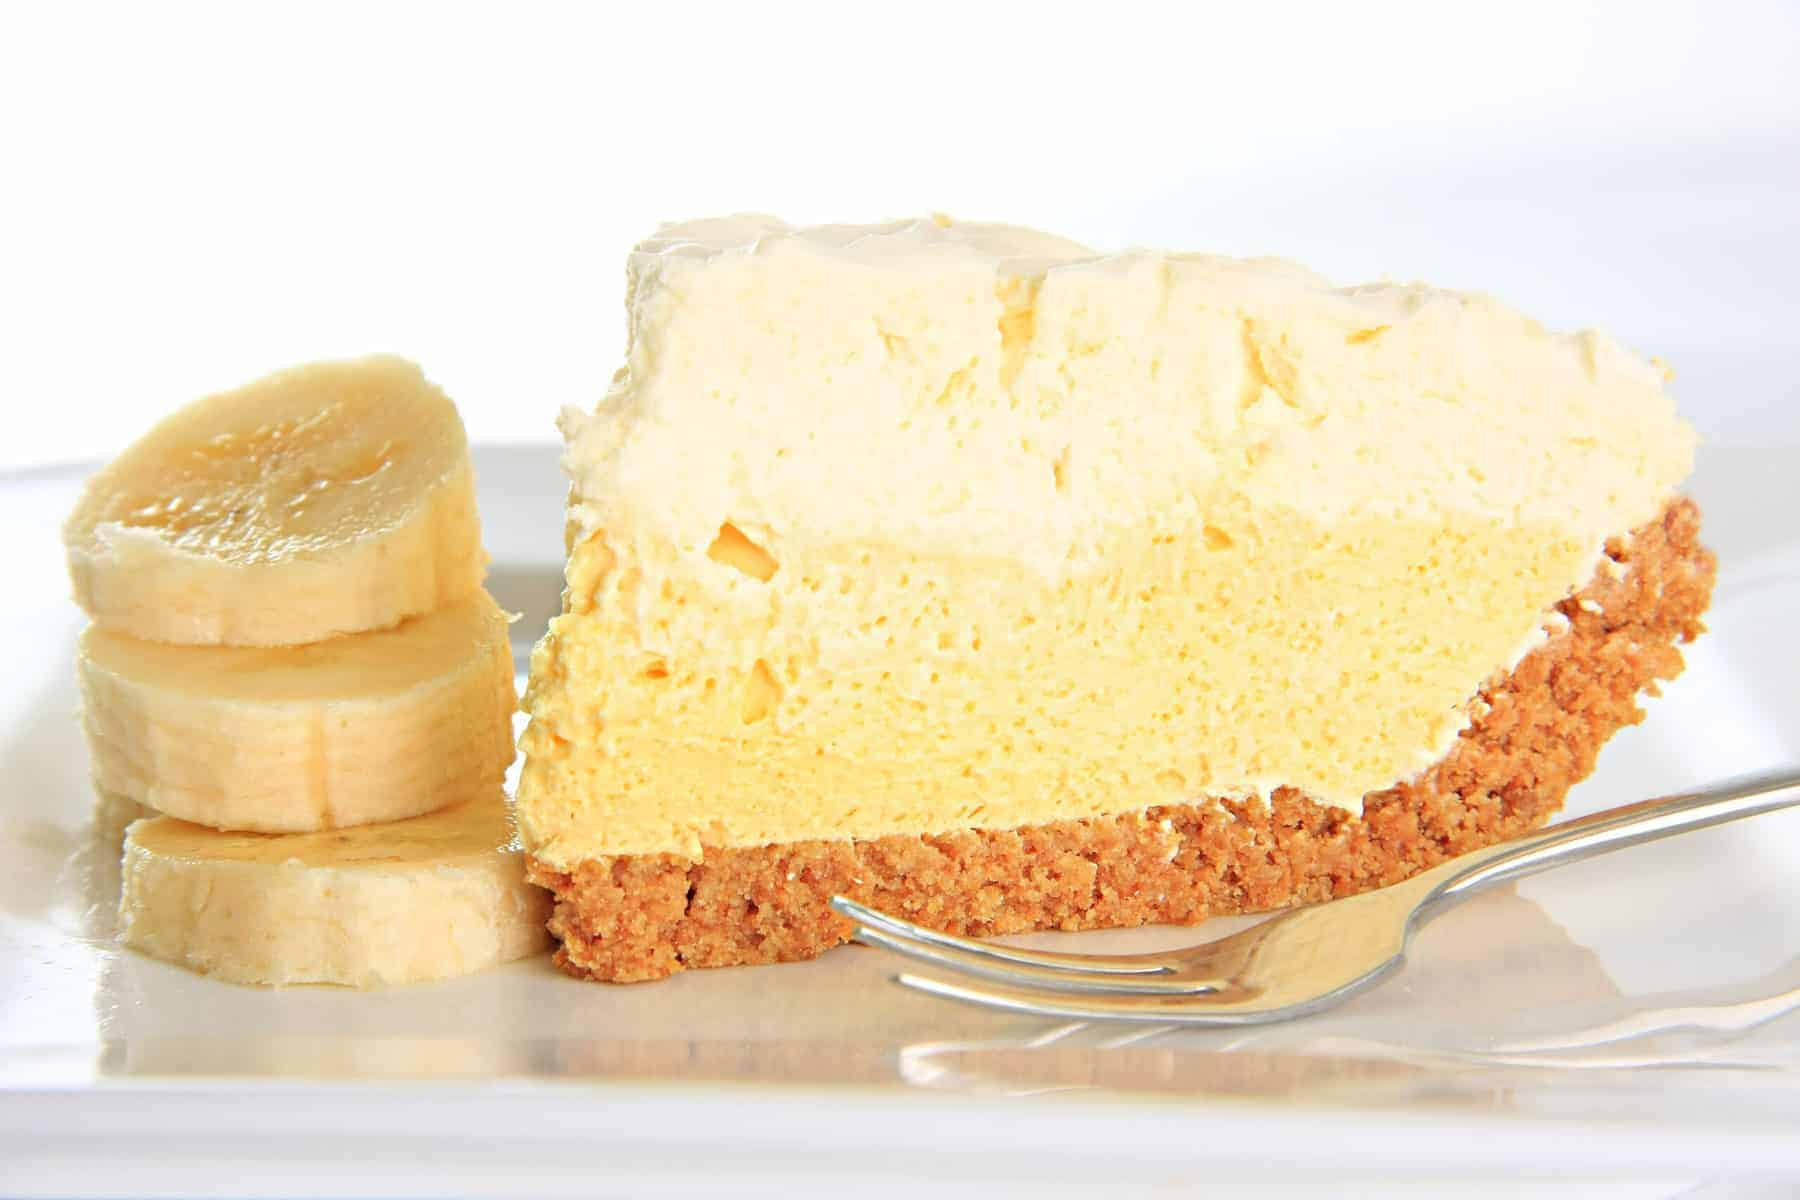 Slice of banana cream pie on a plate with a stack of banana slices